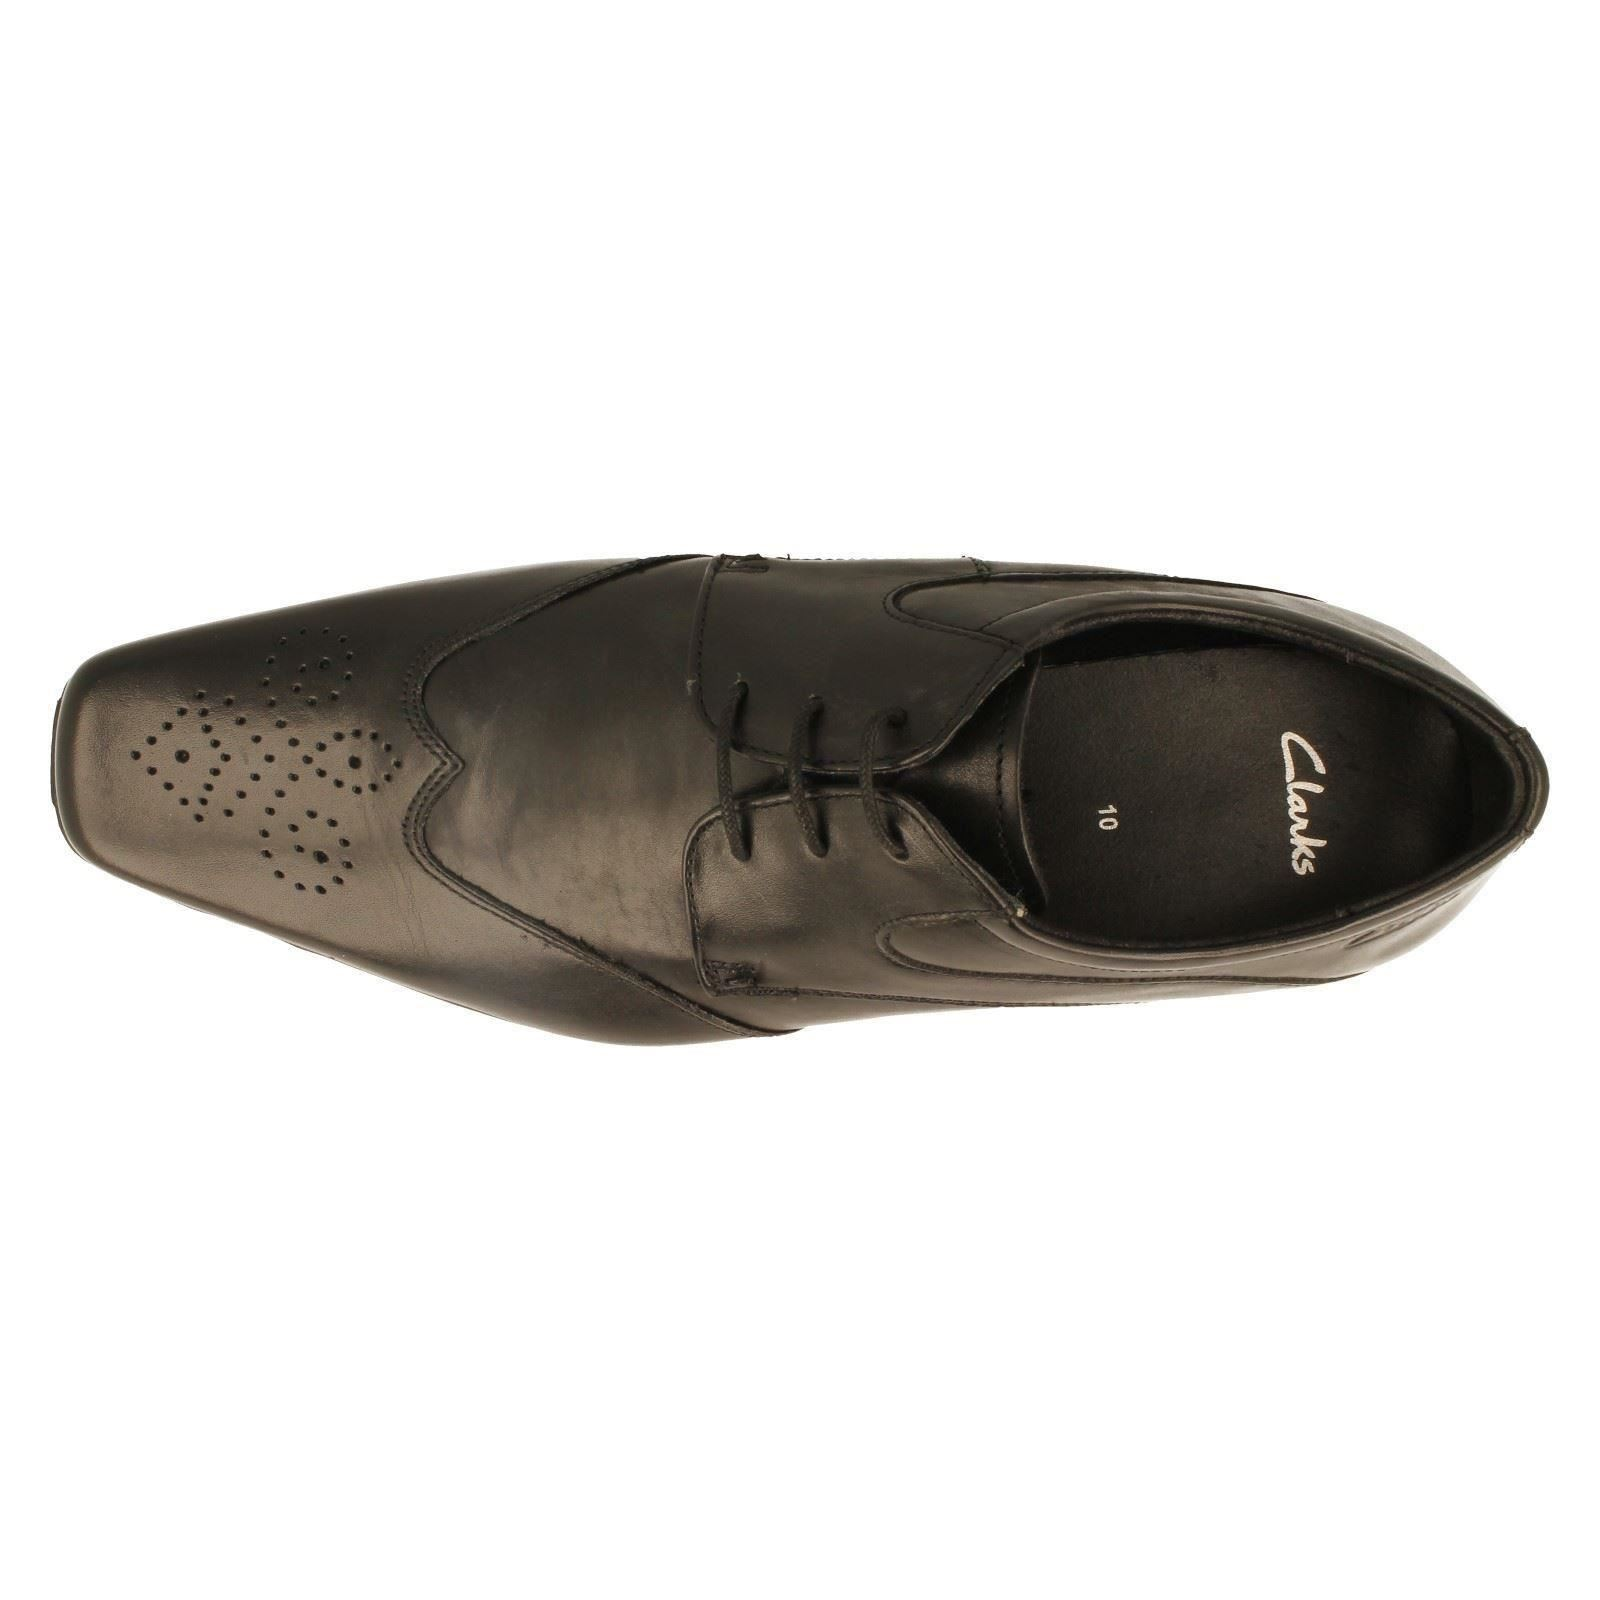 Hombre Clarks Clarks Clarks Formal Lace-Up Zapatos, The Style Baffix Moscow -w fe4642